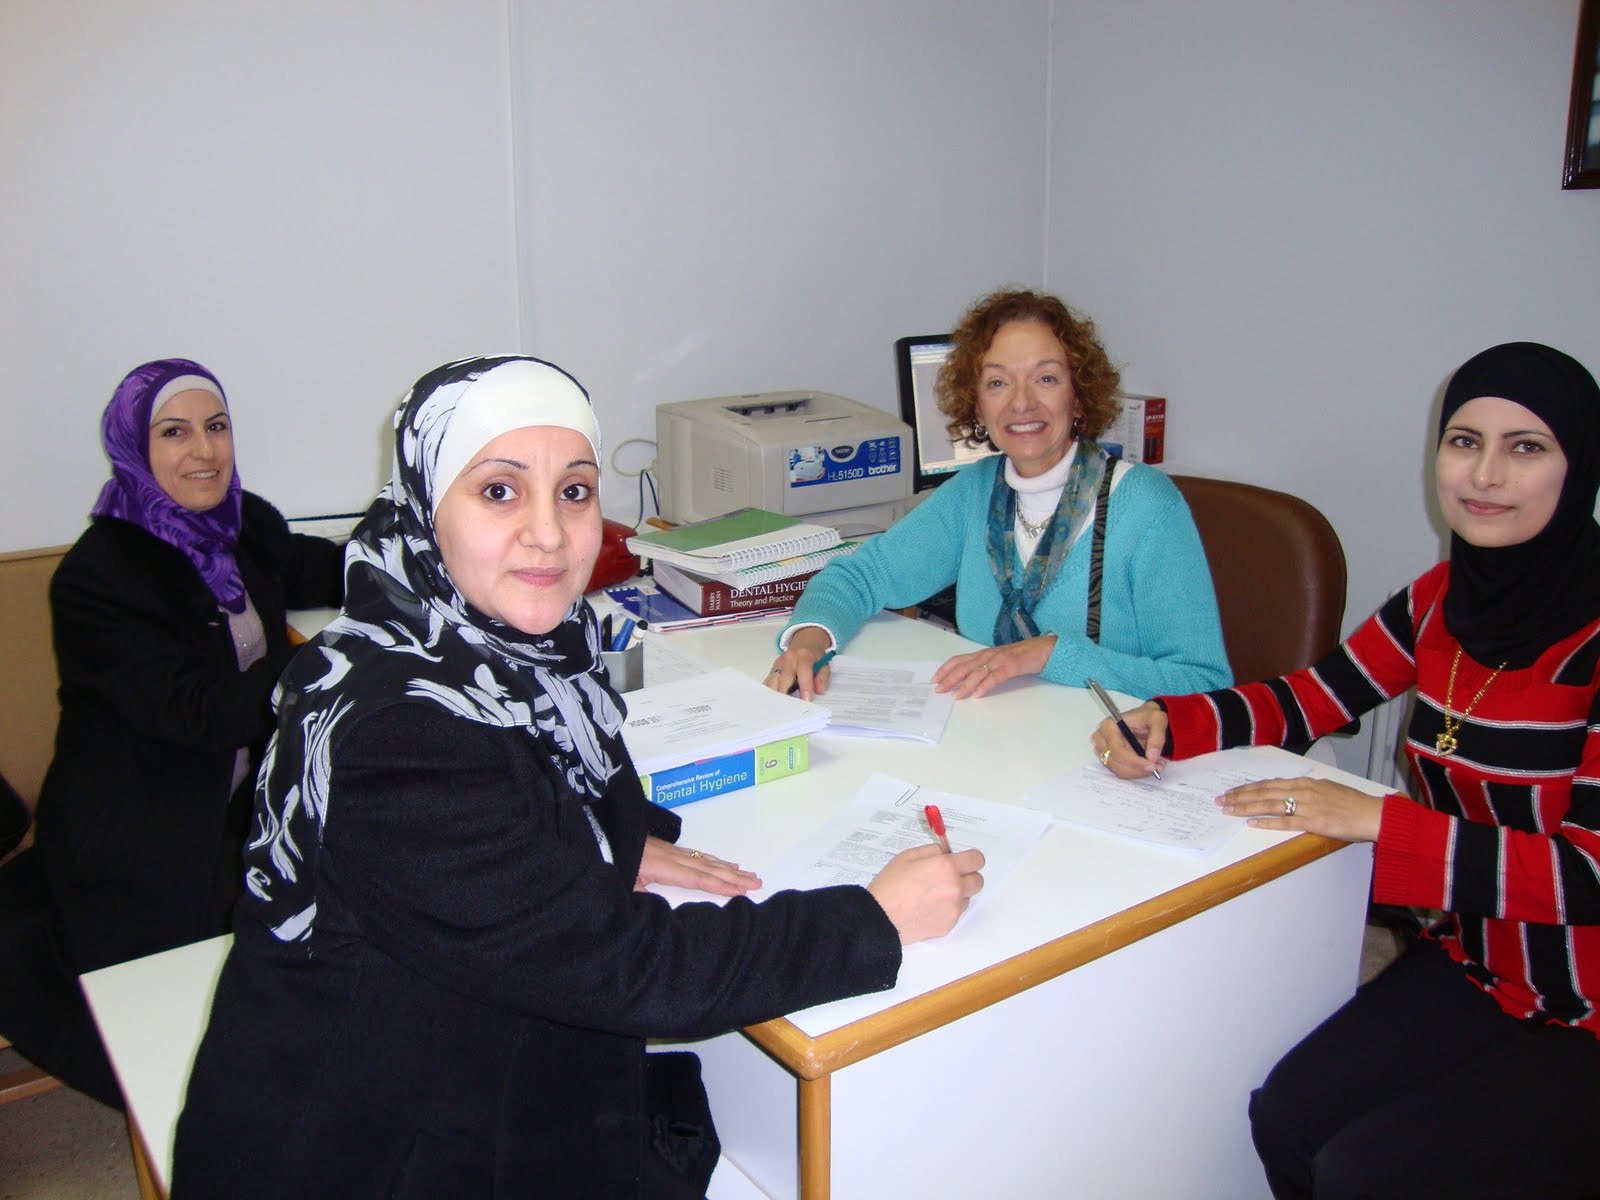 Professor Michele L. Darby (back right) teaching interested dental hygiene students at the Jordan Universty of Science and Technology. (Photo credit: Prof. Michele Darby)